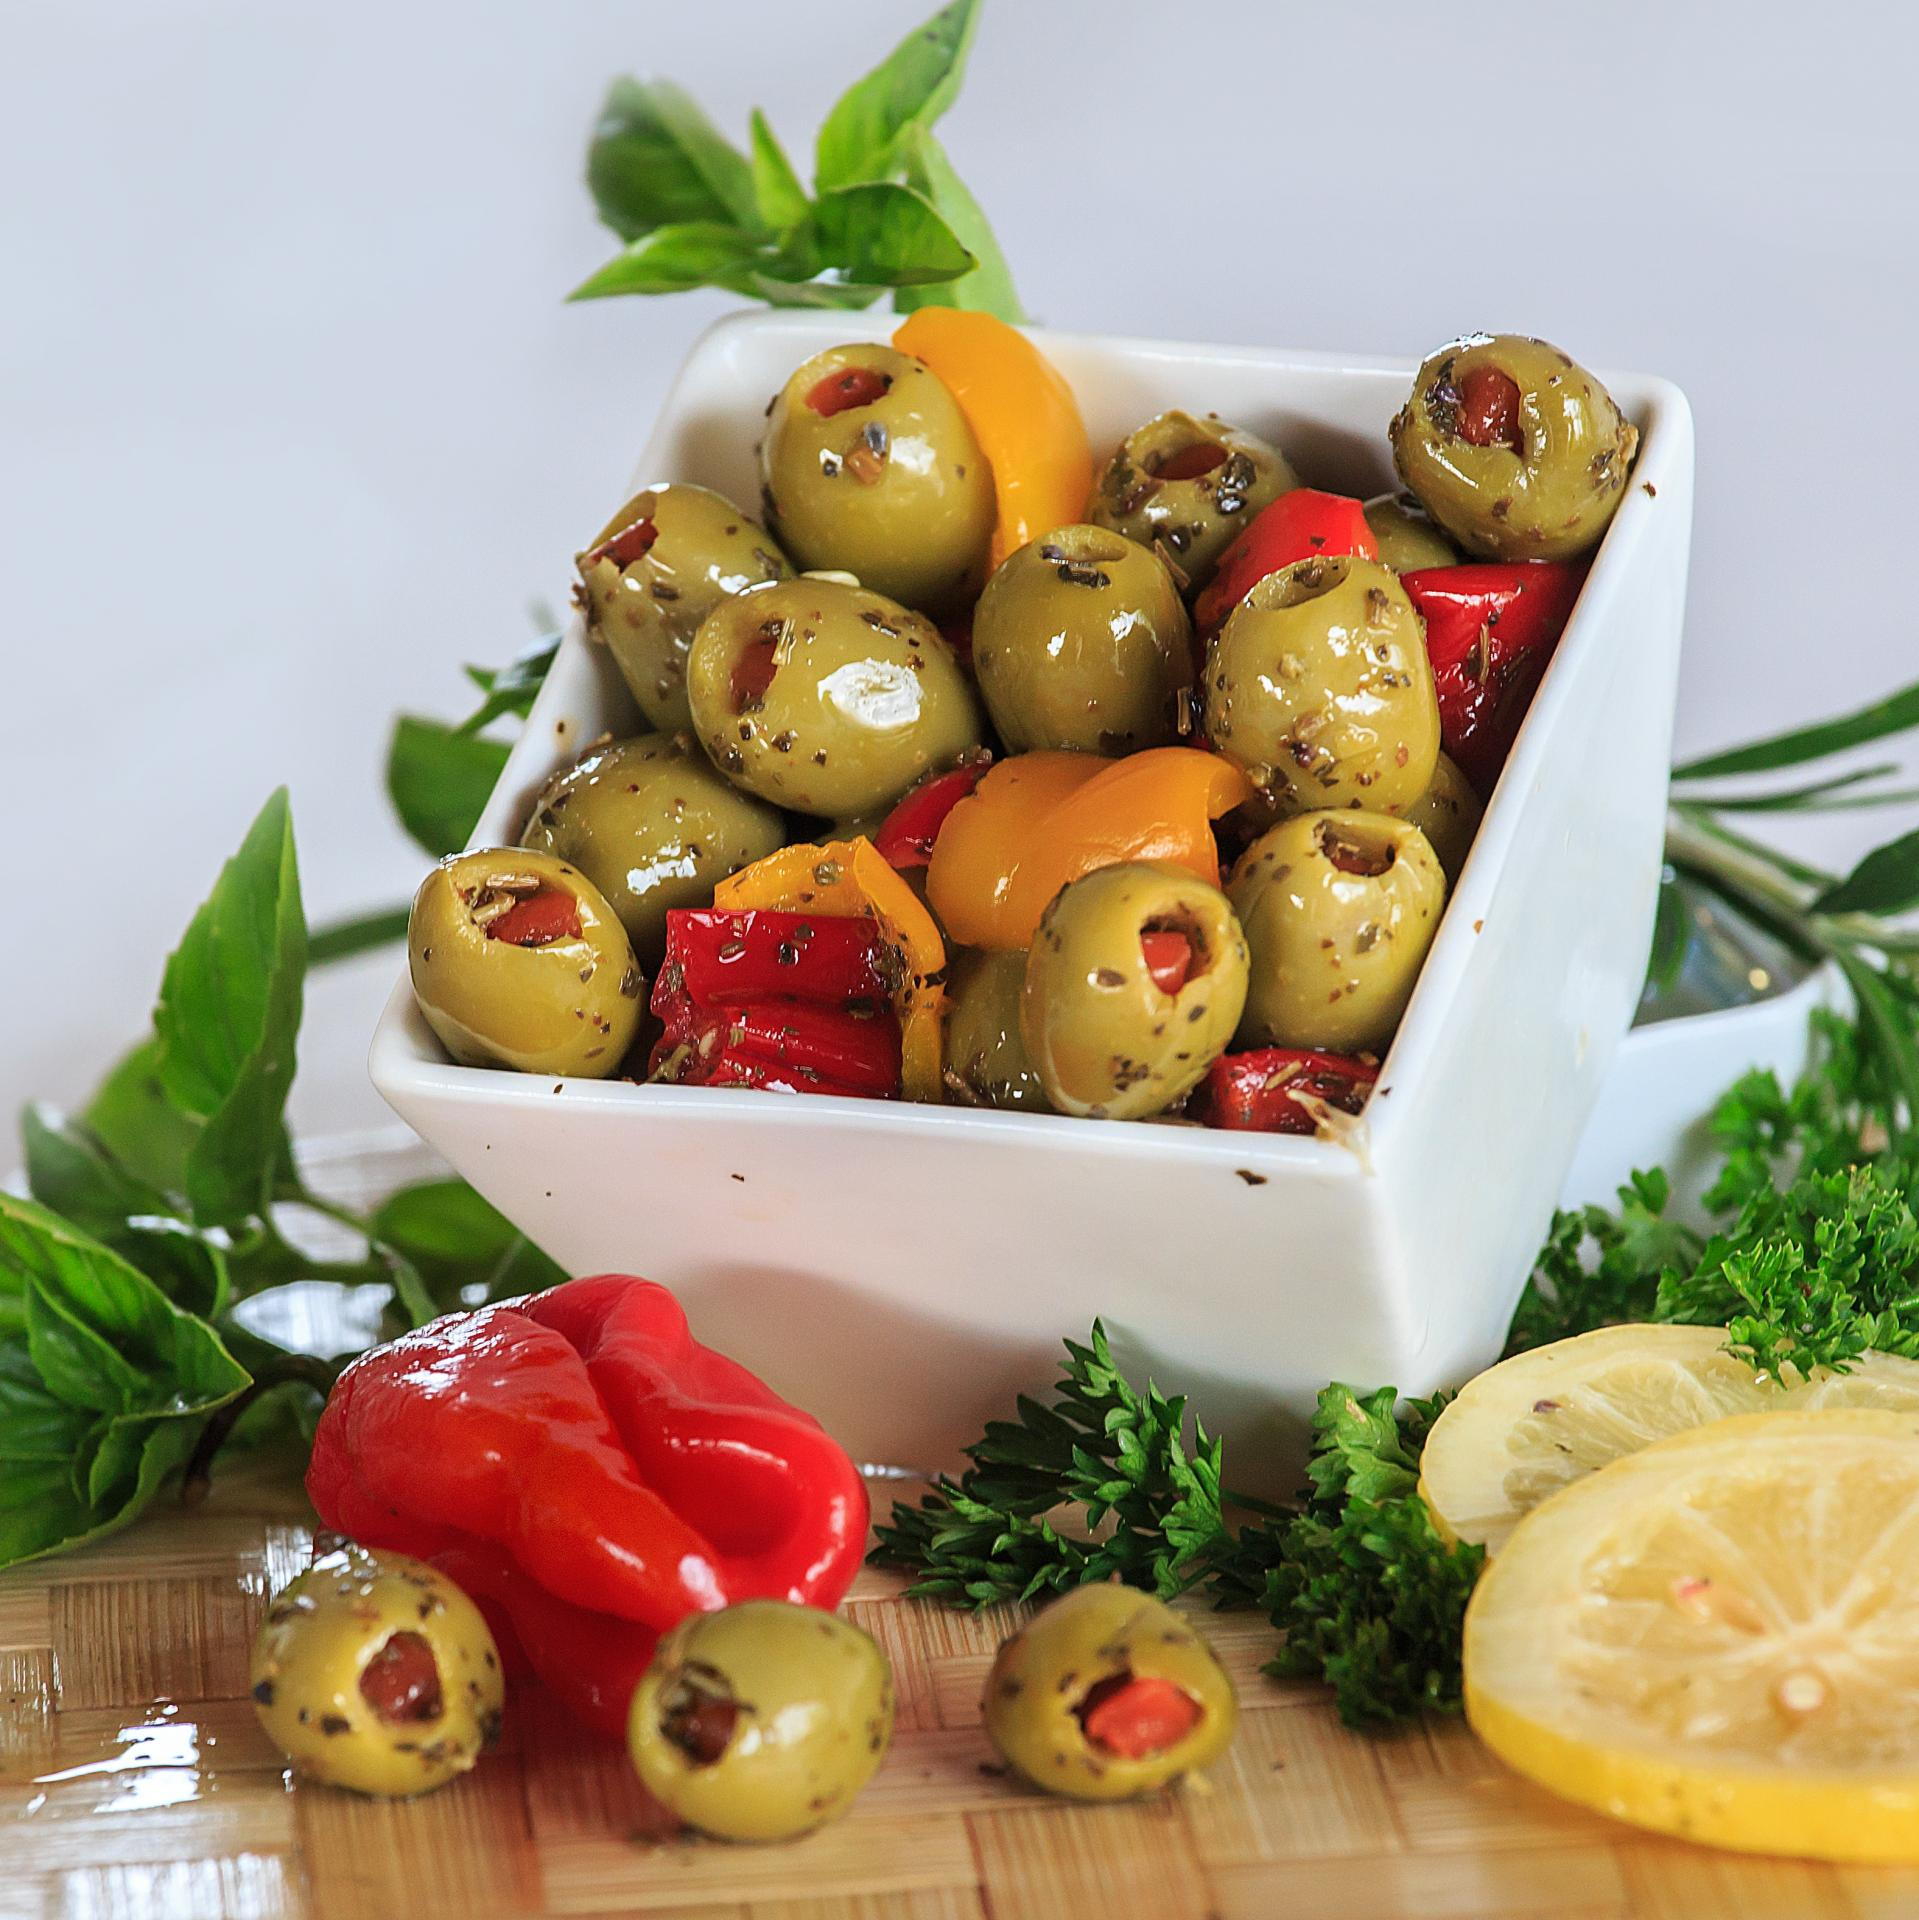 Olives vertes fouree citron piments